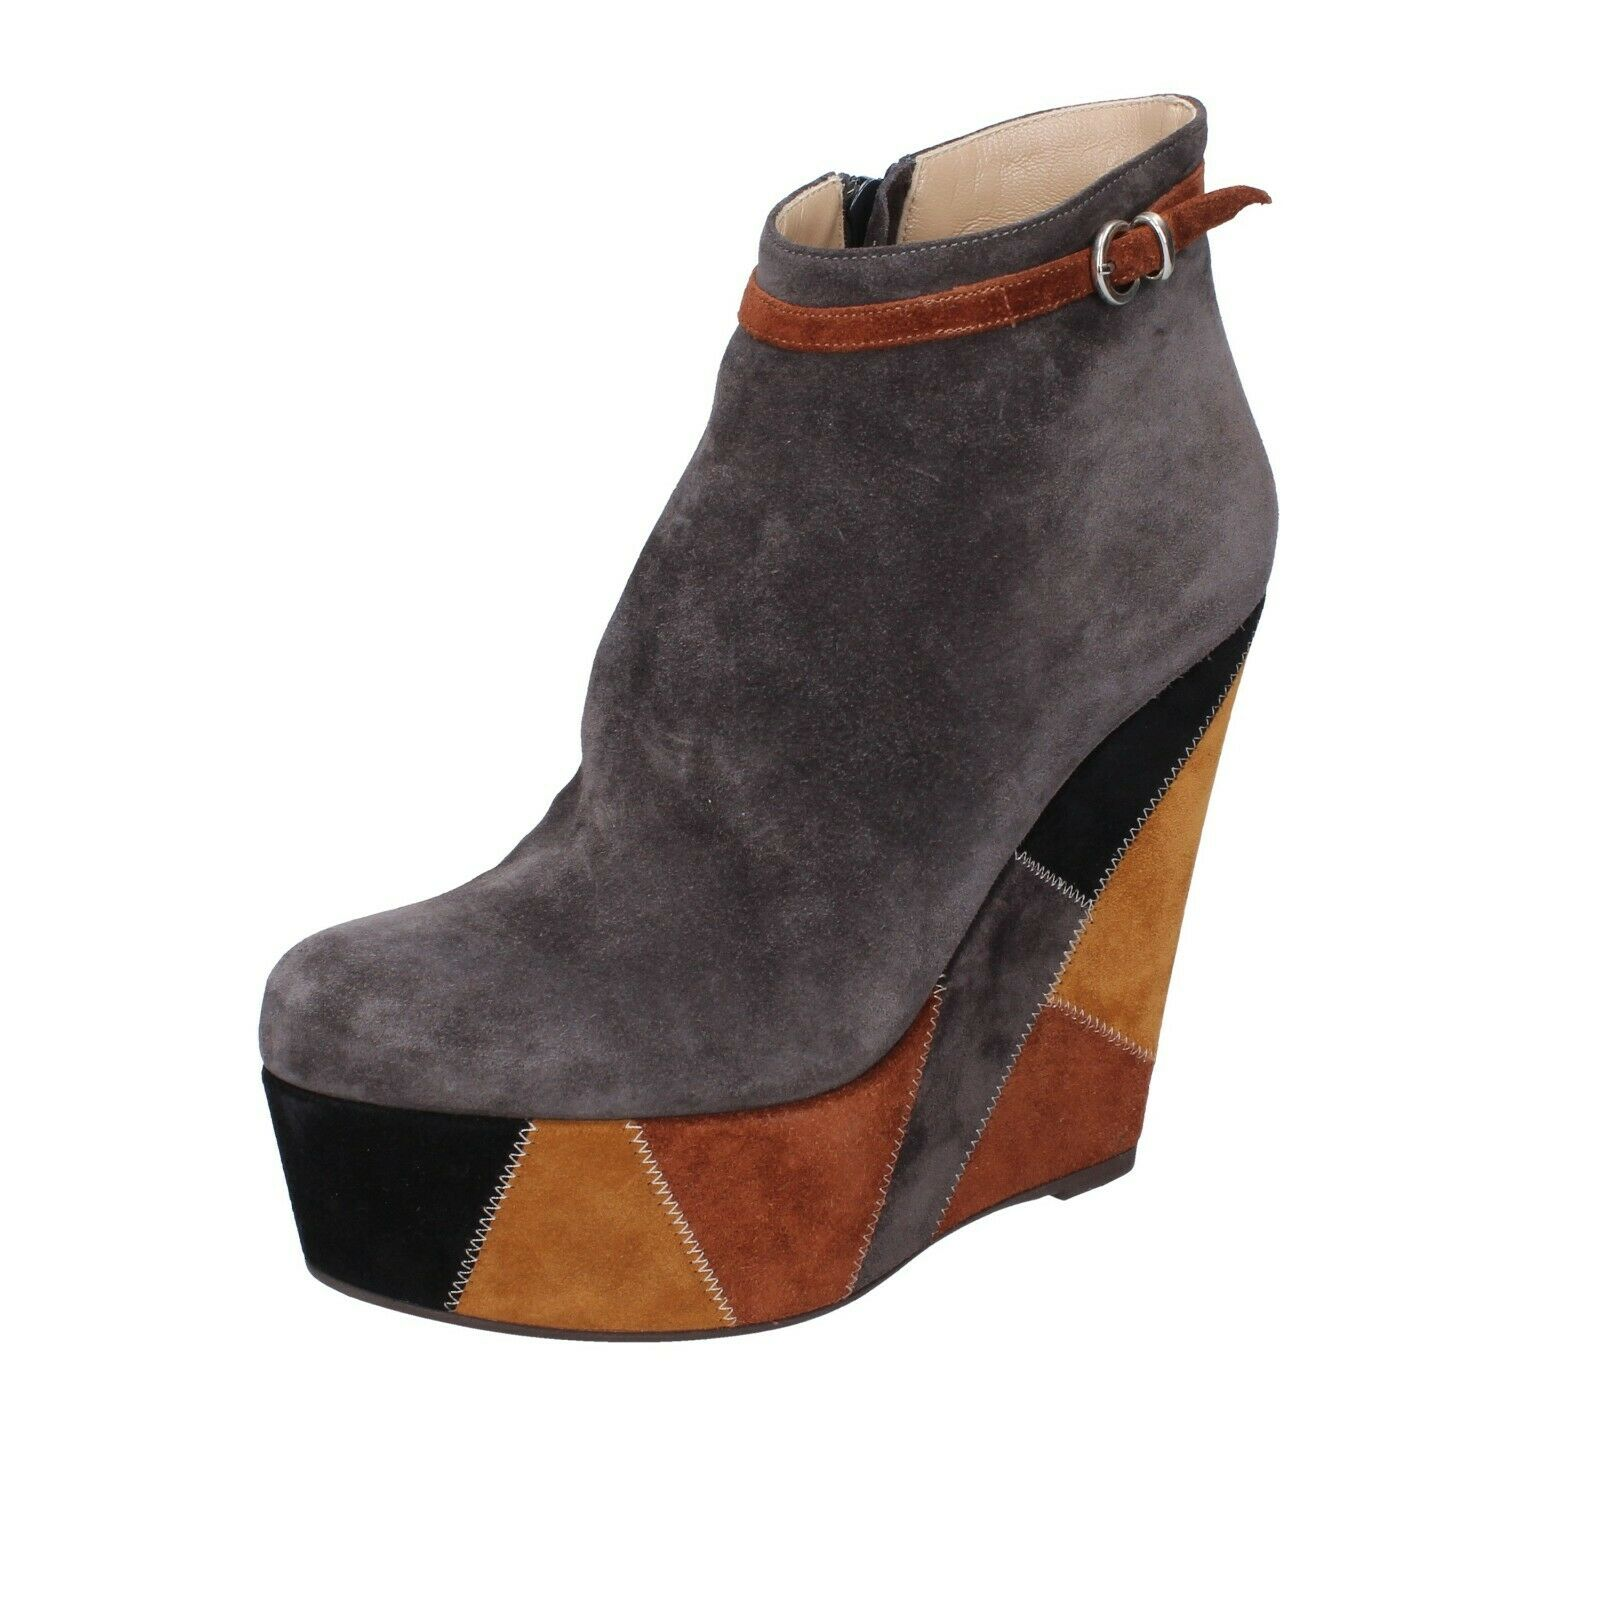 Womens shoes Gianni Marra 39 EU ankle boots wedge grey suede AK821-39